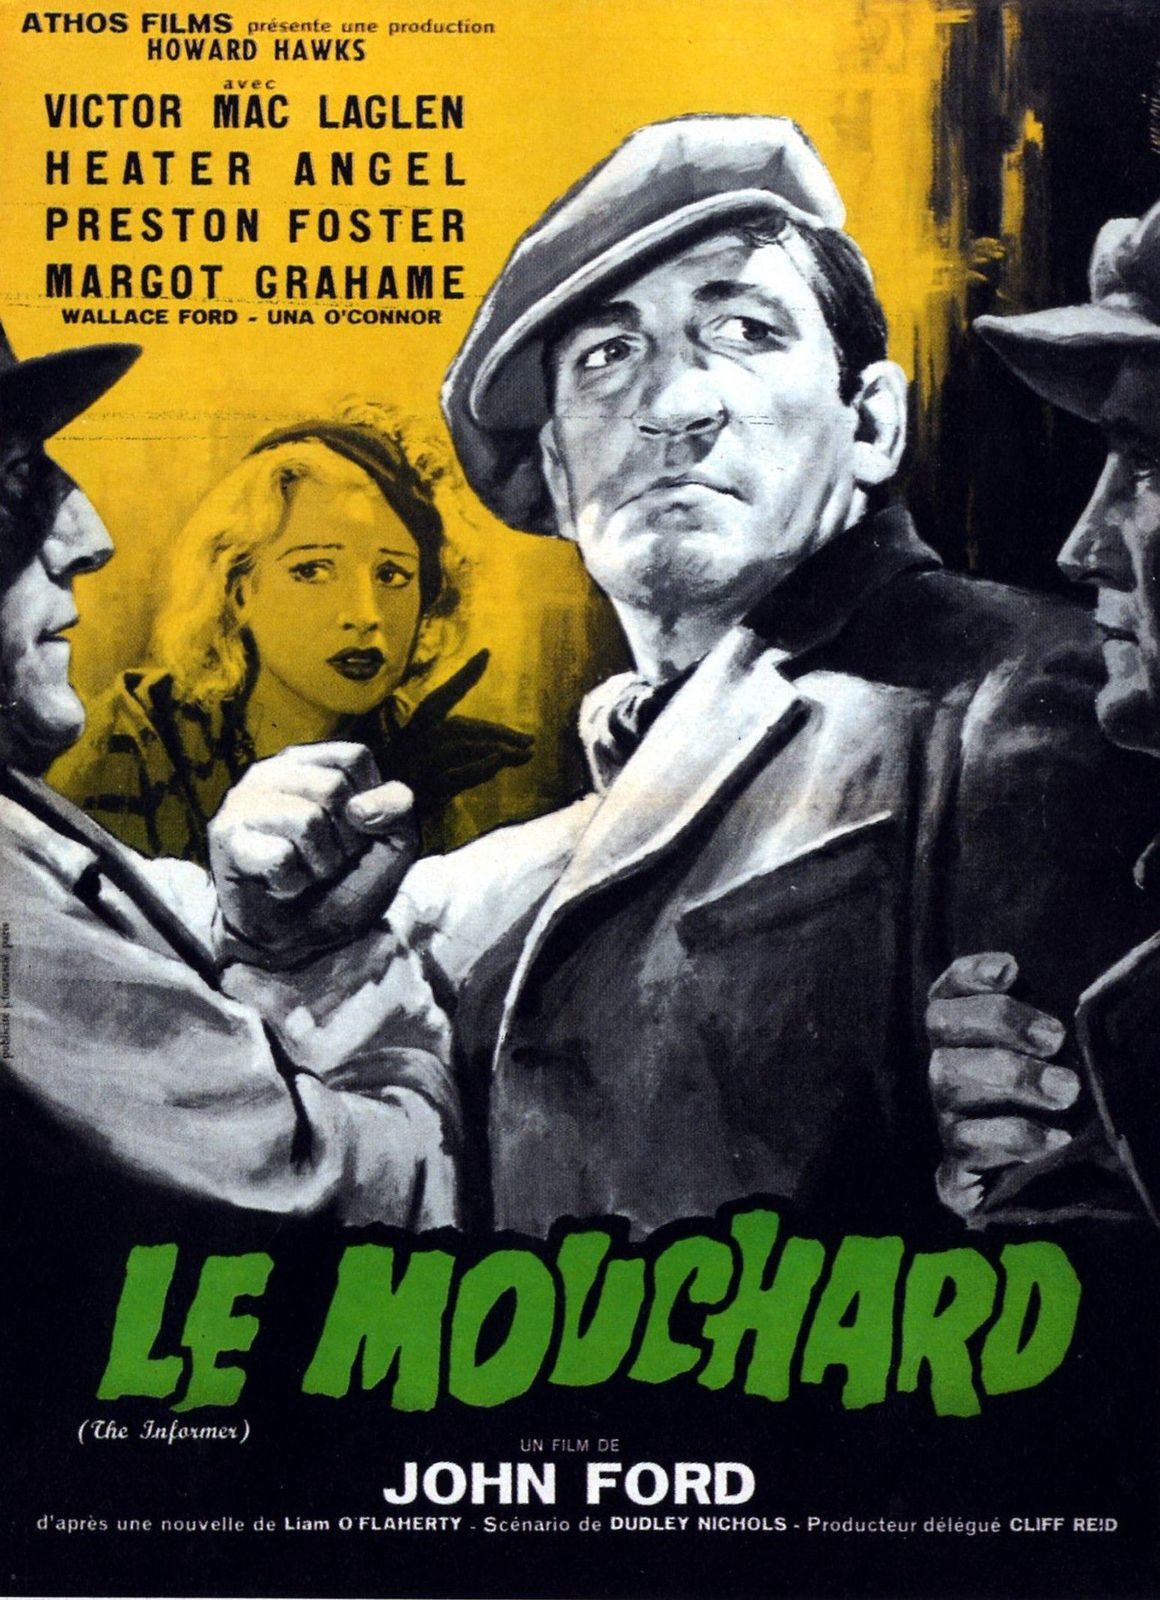 LE MOUCHARD (The Informer)